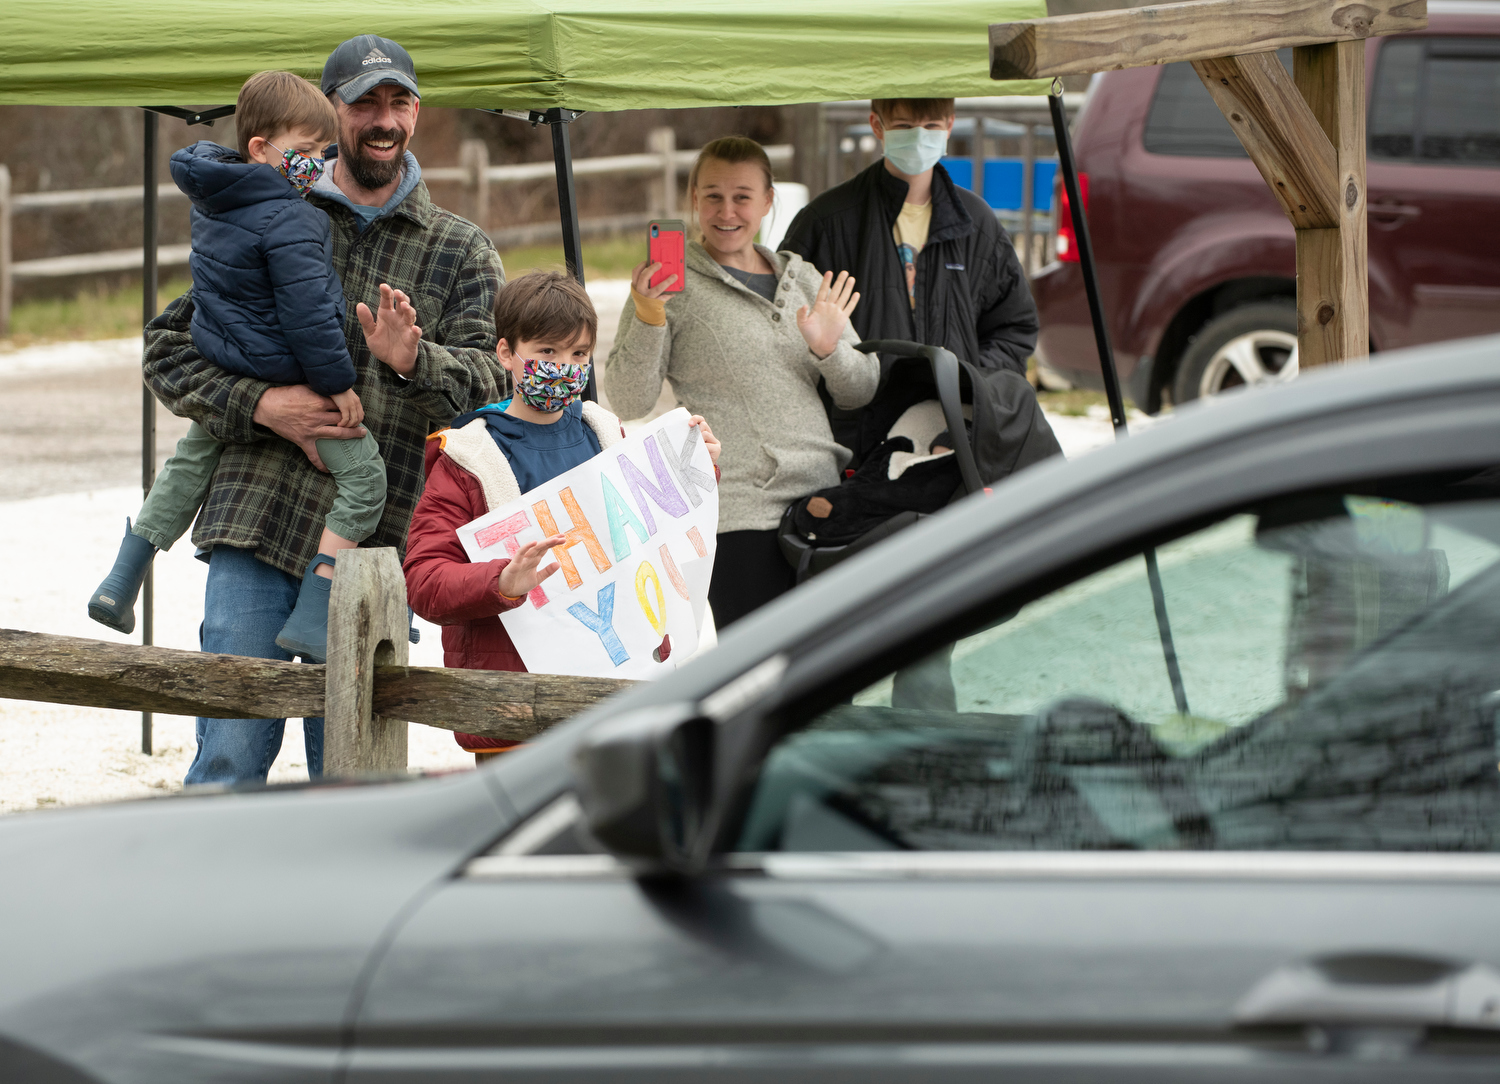 """TRURO - Cameron Miner, 9, receives birthday greetings in the form of a """"Birthday Caravan"""" organized by Truro's Recreation Department on Wednesday, April 15, 2020. His parents, Chris and Nicole and brother, Gus, 4, wave to the well-wishers behind him."""